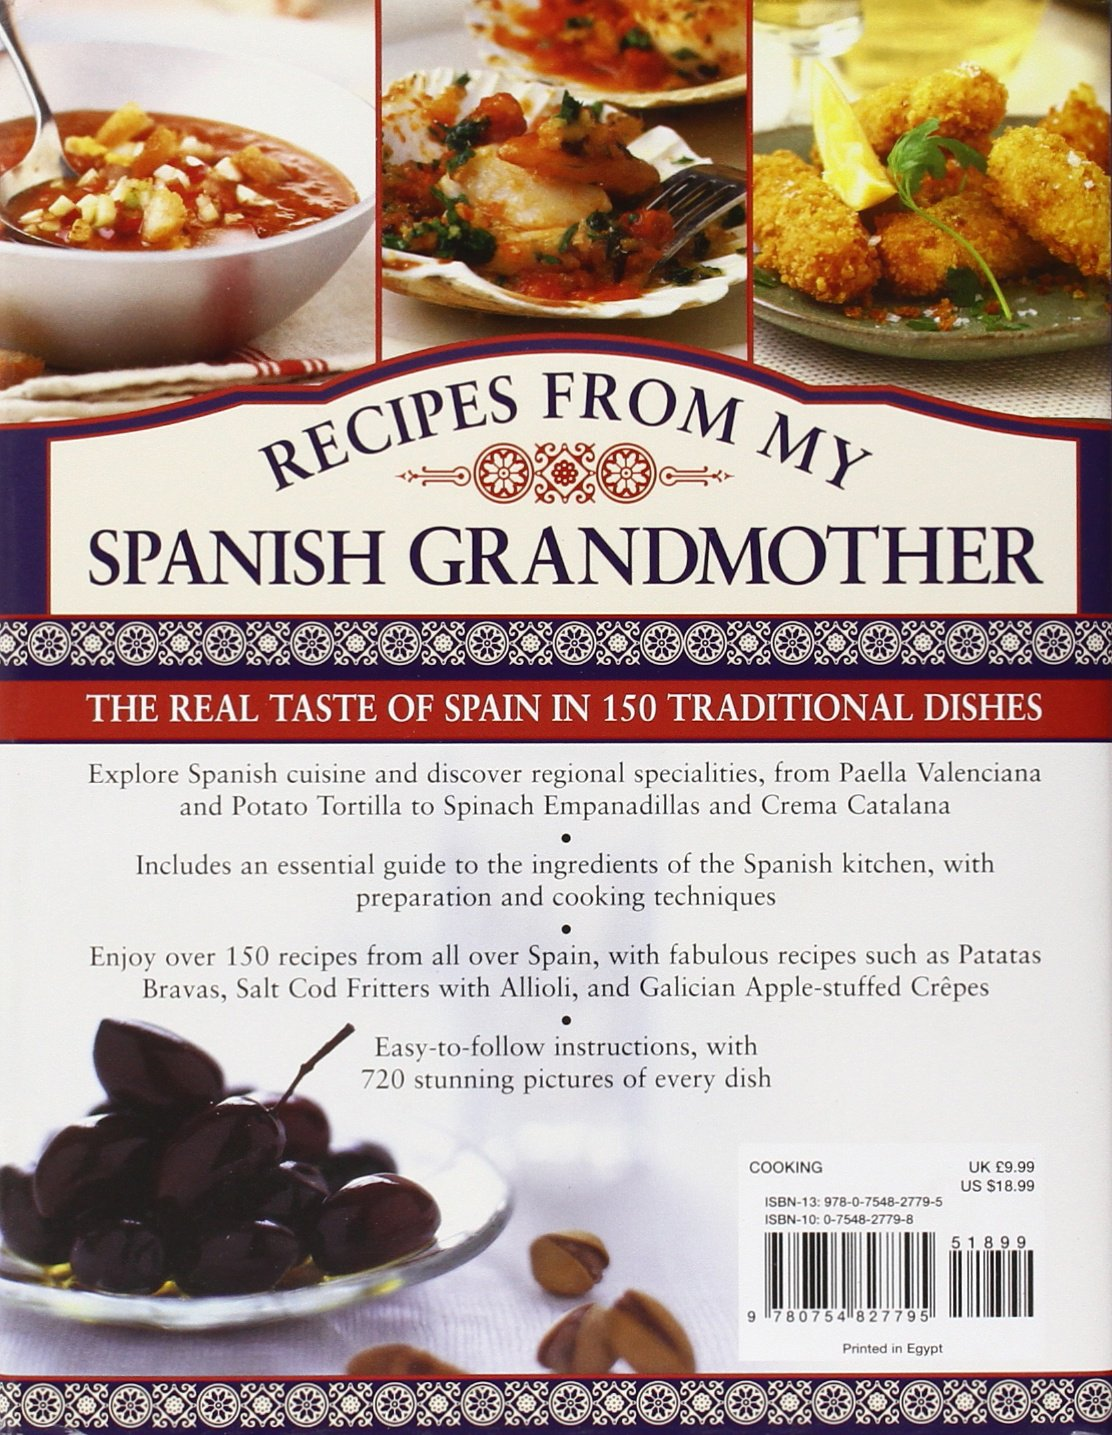 Recipes from my spanish grandmother amazon pepita aris libros recipes from my spanish grandmother amazon pepita aris libros en idiomas extranjeros forumfinder Images